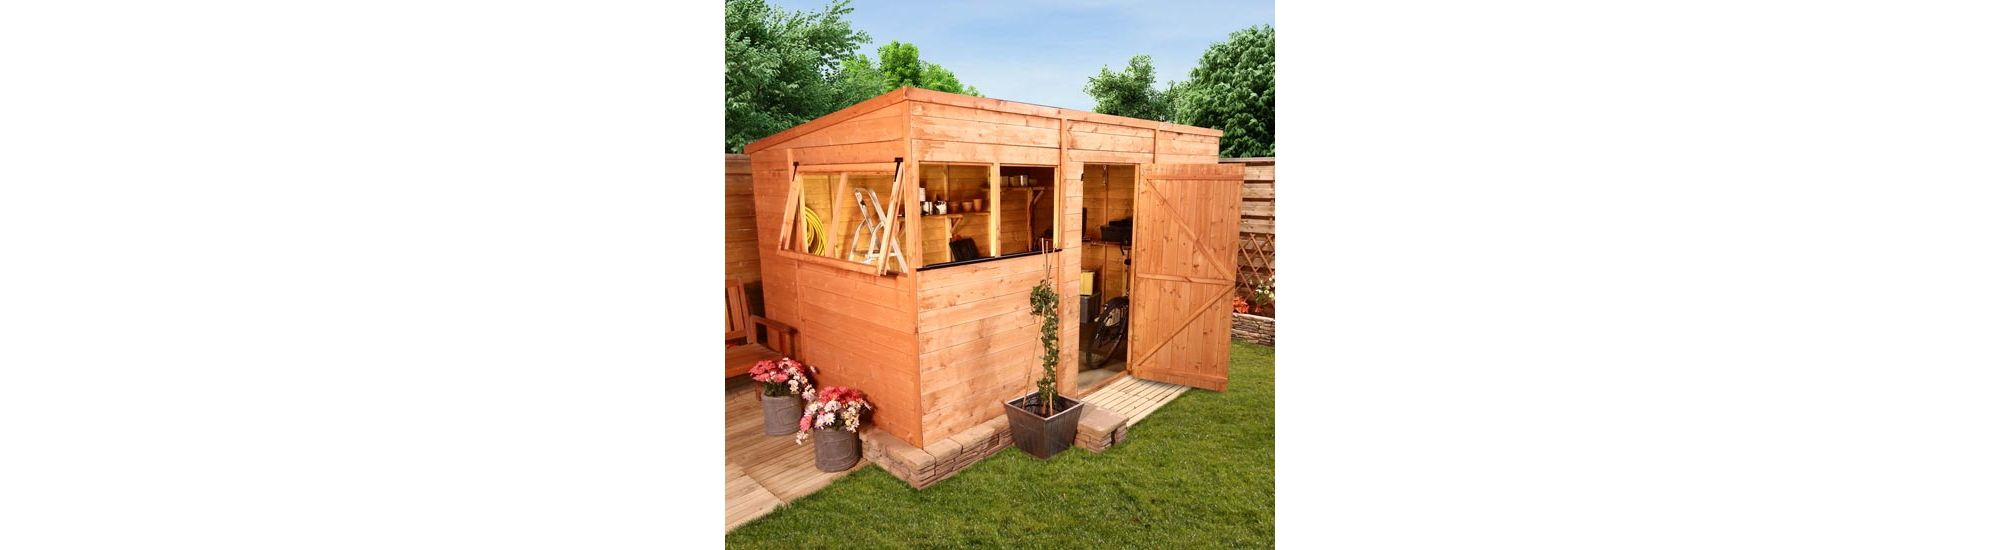 BillyOh 5000 12 x 6 Tongue & Groove Pent Shed